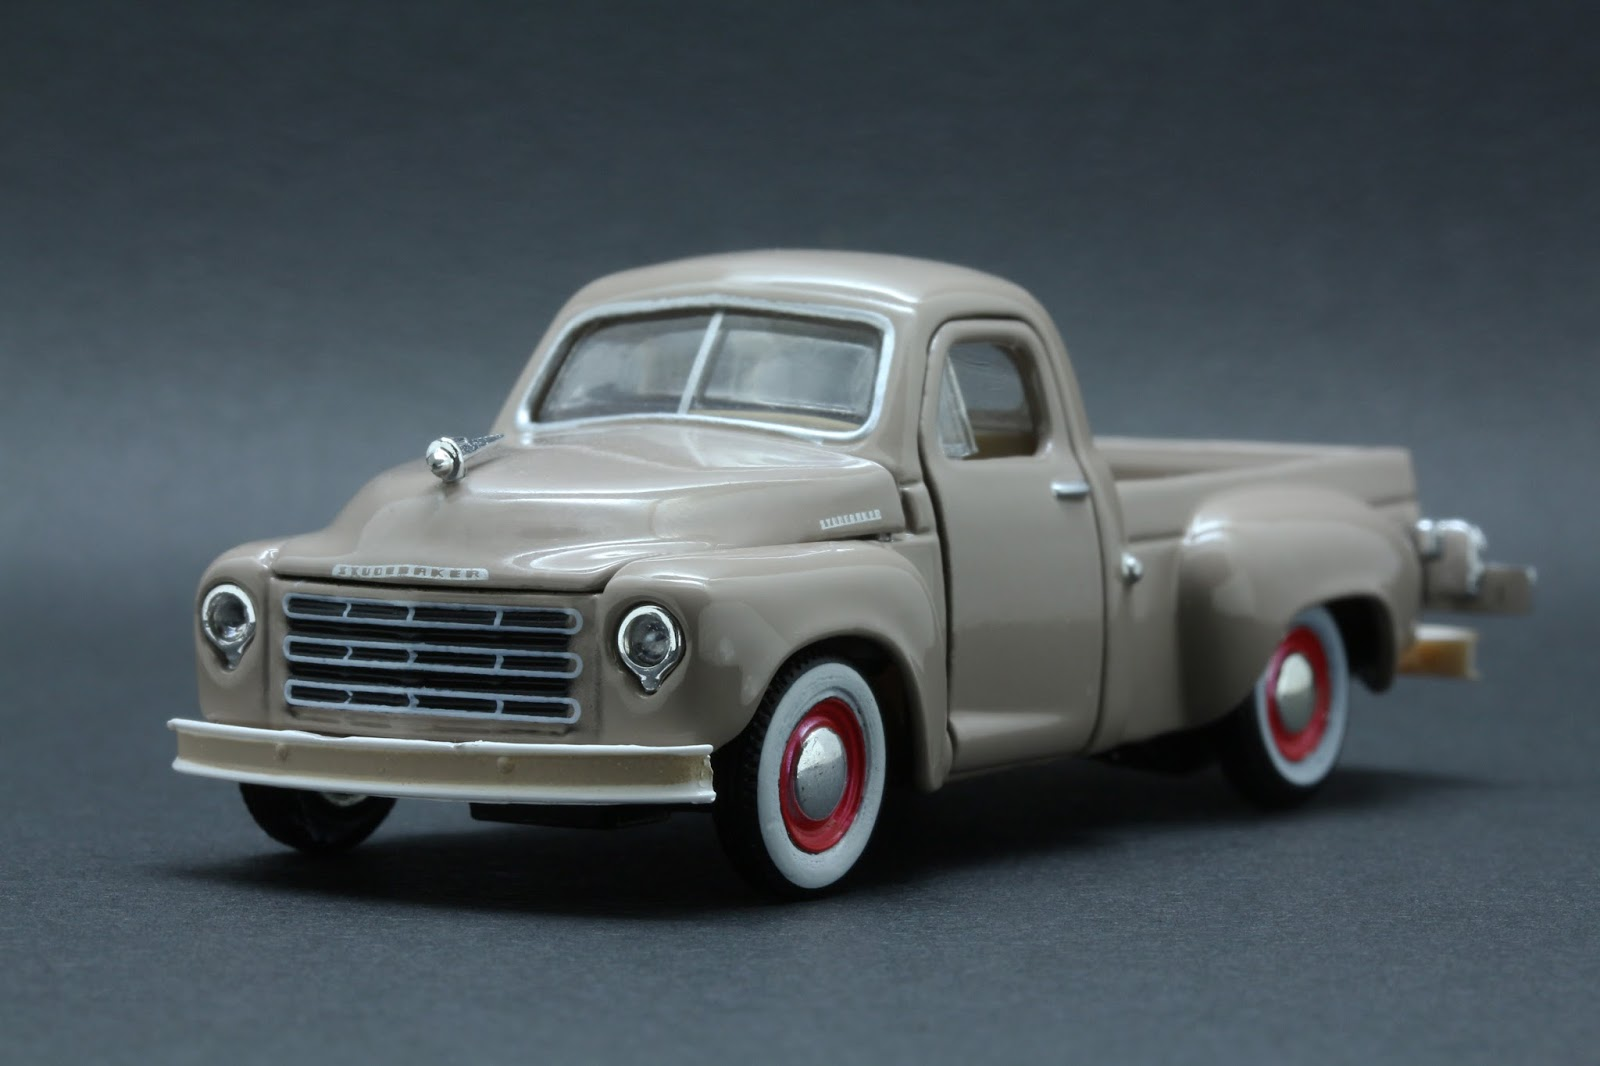 Diecast Hobbist 1949 Studebaker 2r Truck Dodge Panel Van 164 Scale From M2 Machines Auto Trucks Release 32